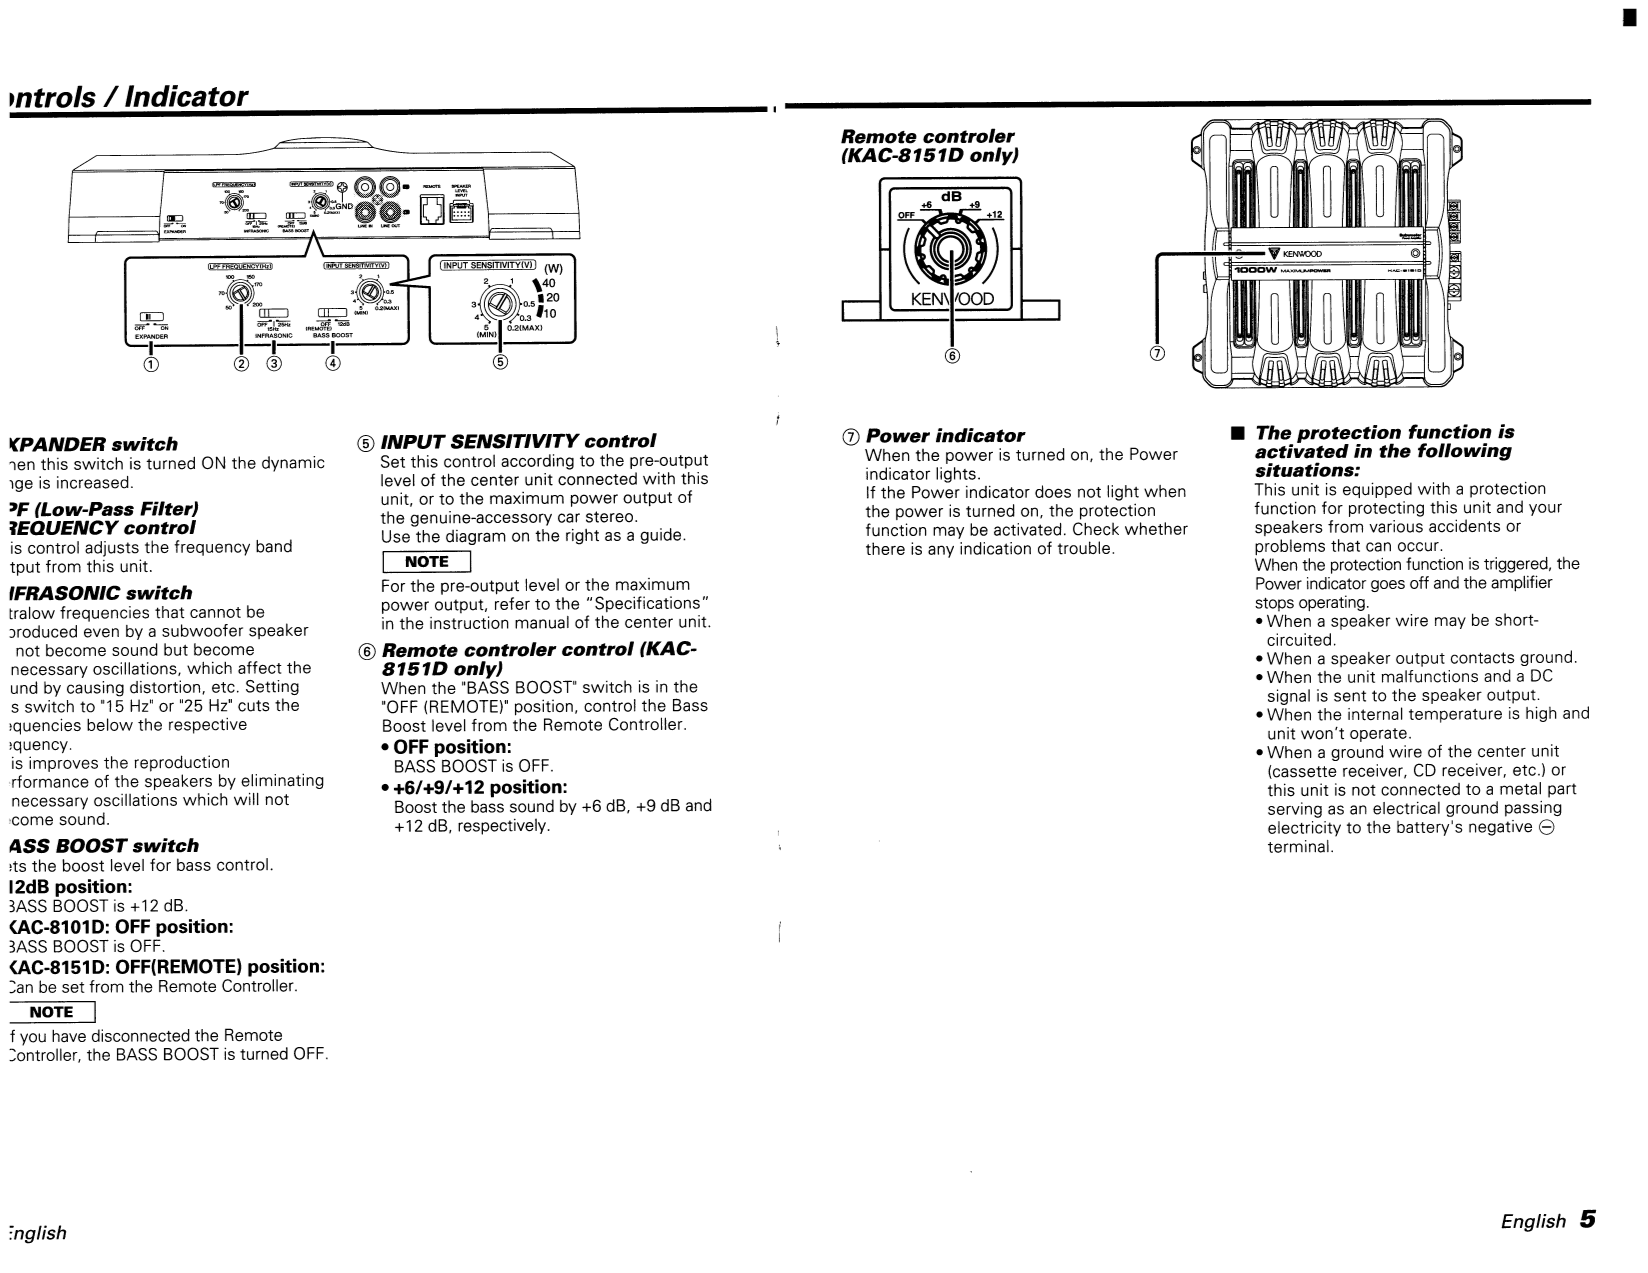 113kac8151.pdf 4 pdf manual for kenwood car amplifier kac 8101d kenwood kac 8101d wiring diagram at panicattacktreatment.co